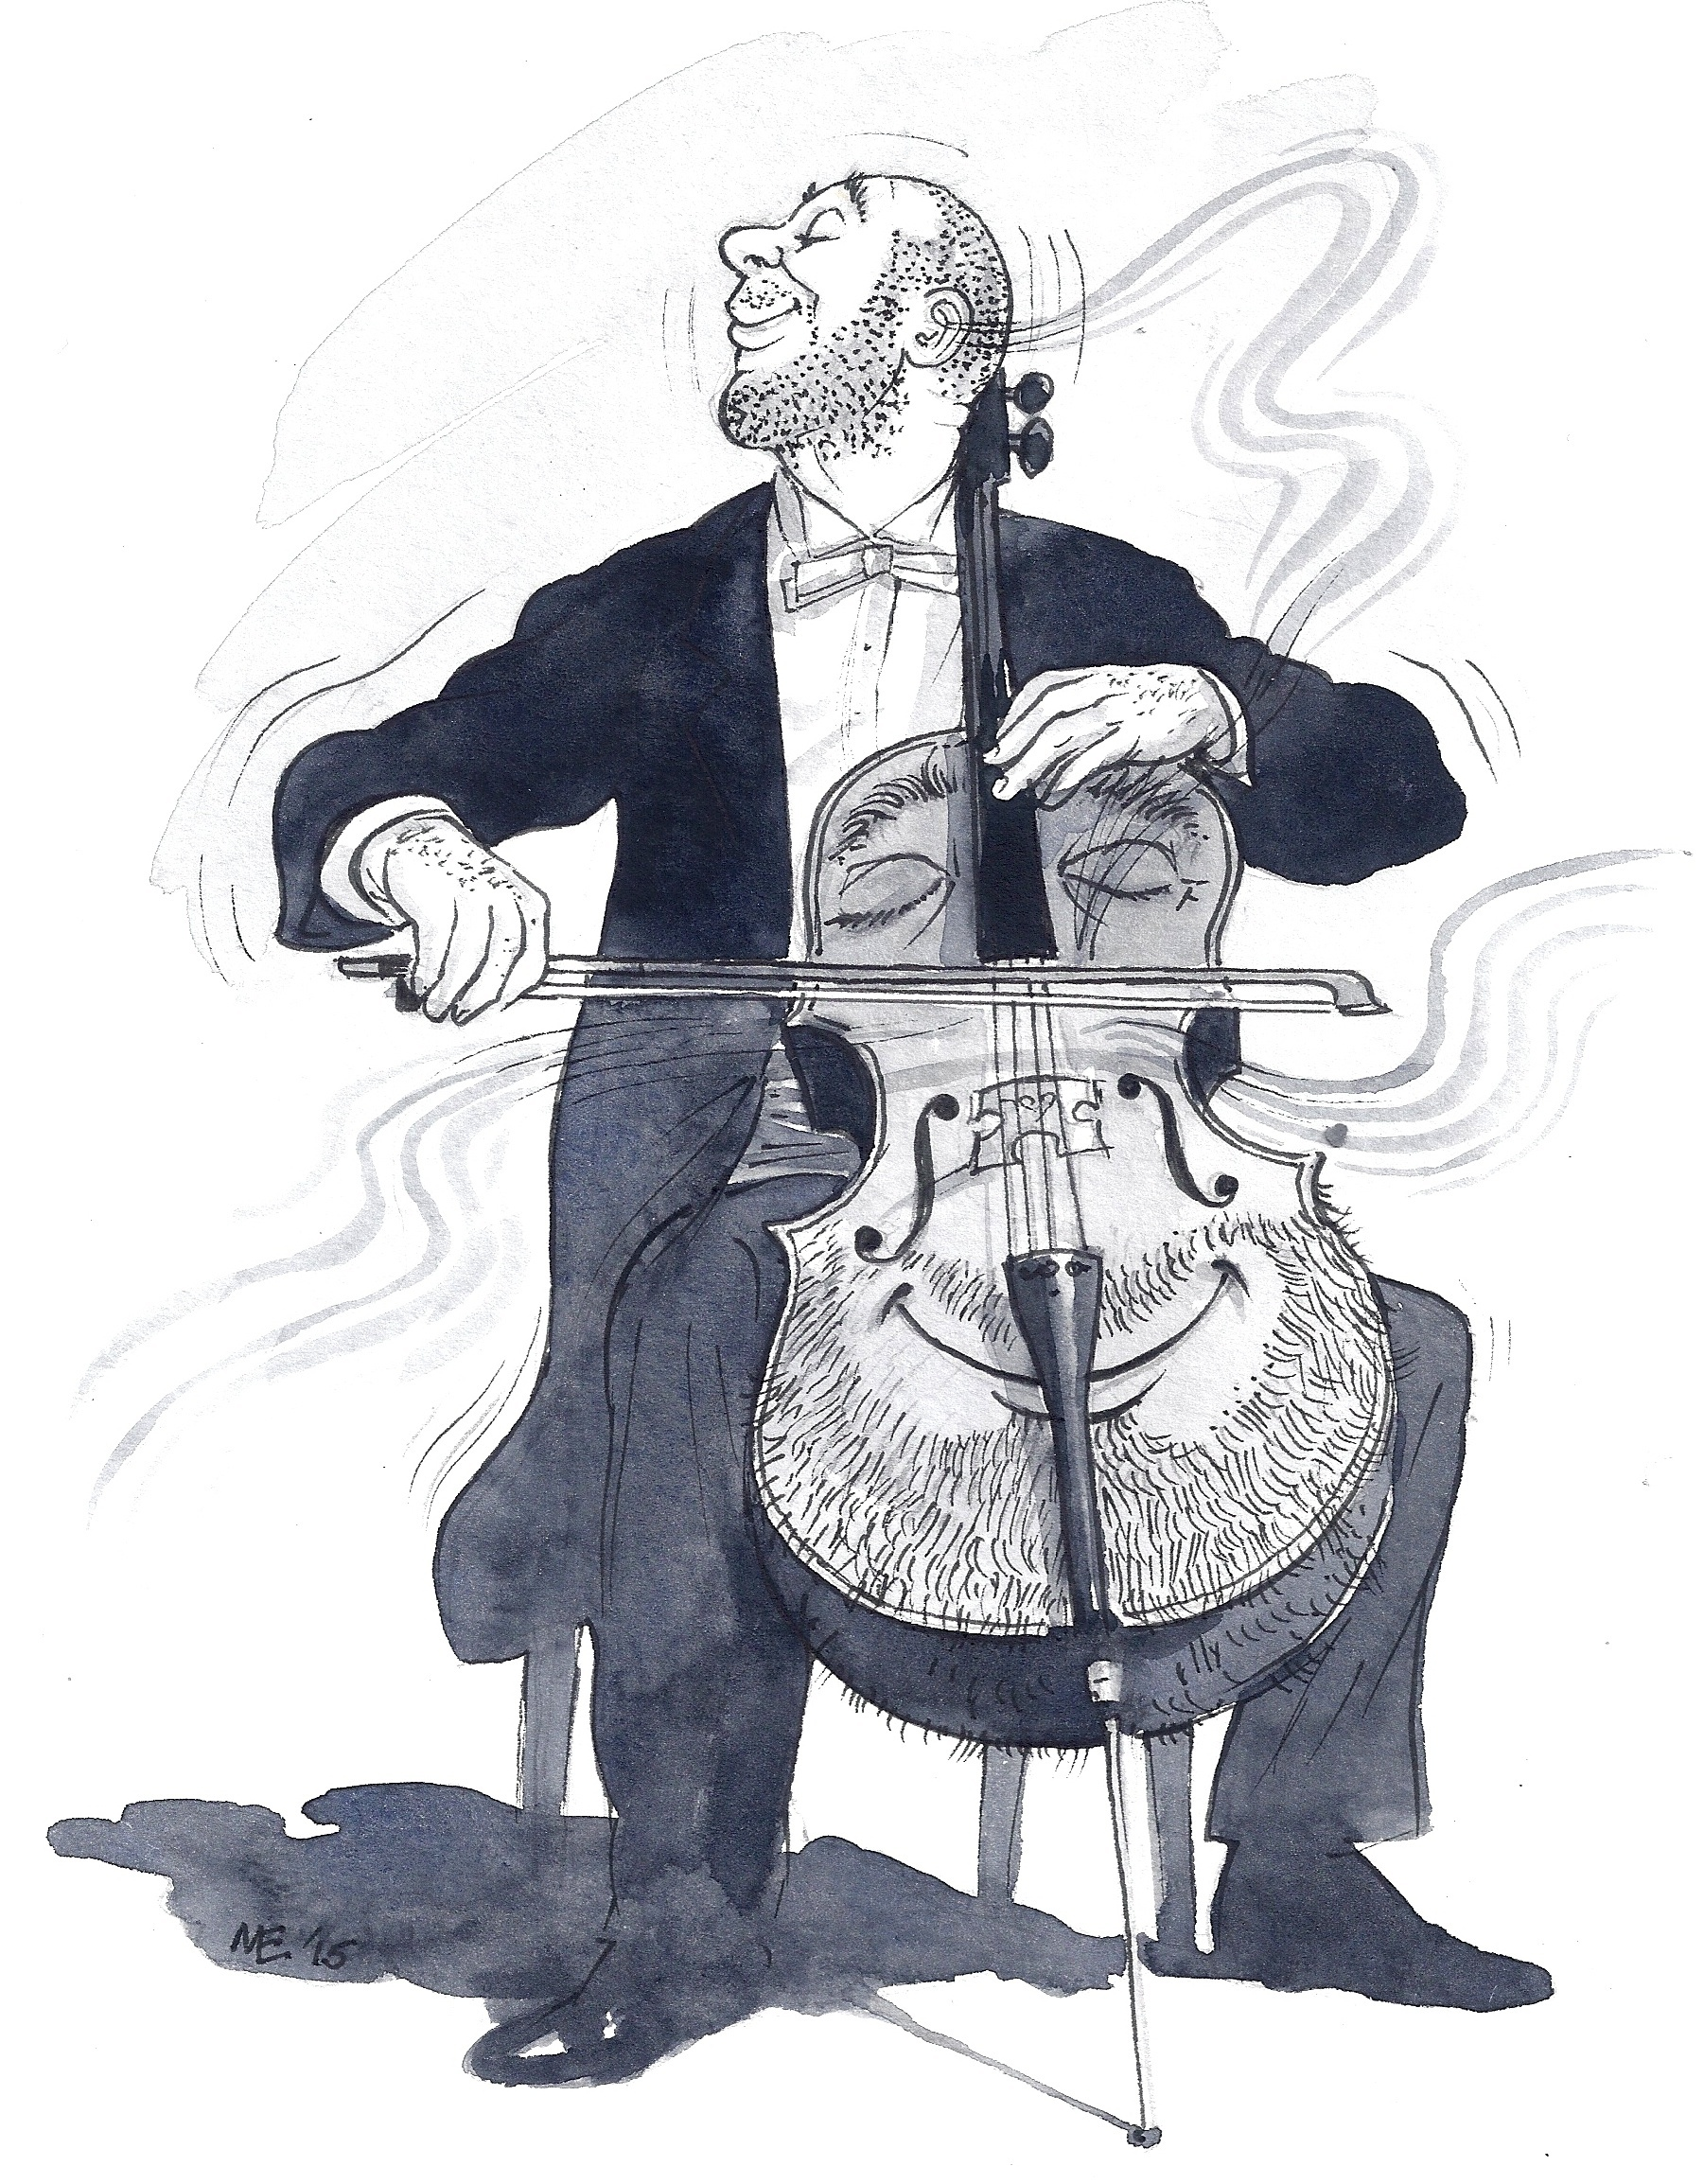 Cartoon of man with beard playing a cello with a beard